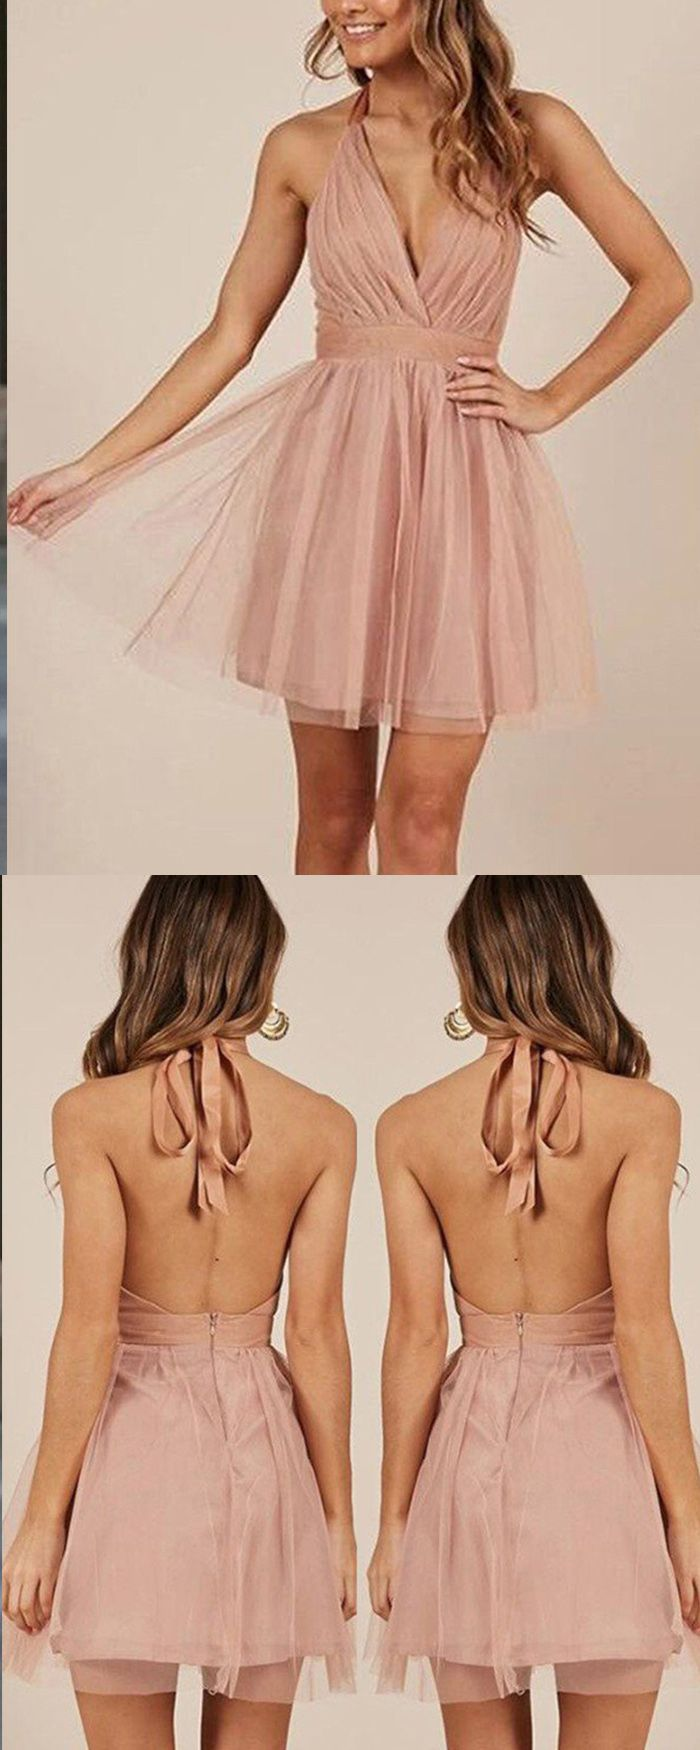 Halter simple blush pink tulle ruched party dress hd in